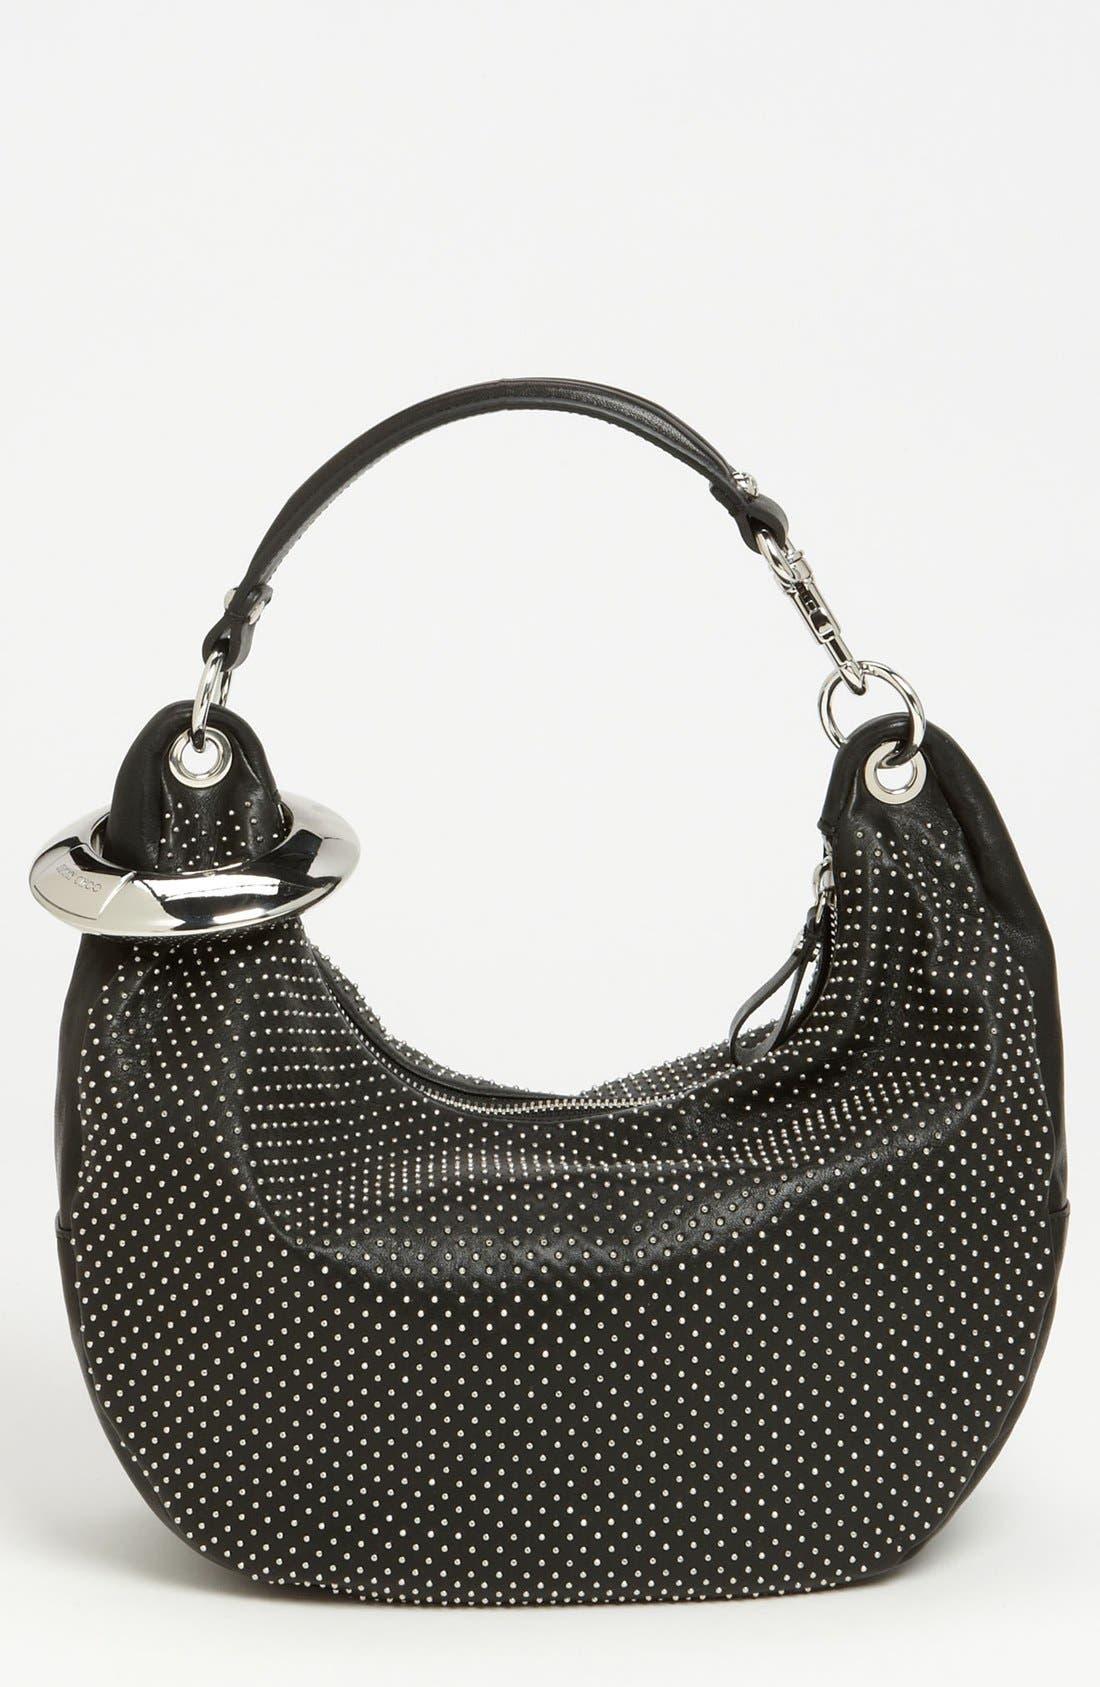 Alternate Image 1 Selected - Jimmy Choo 'Solar - Small' Studded Leather Hobo